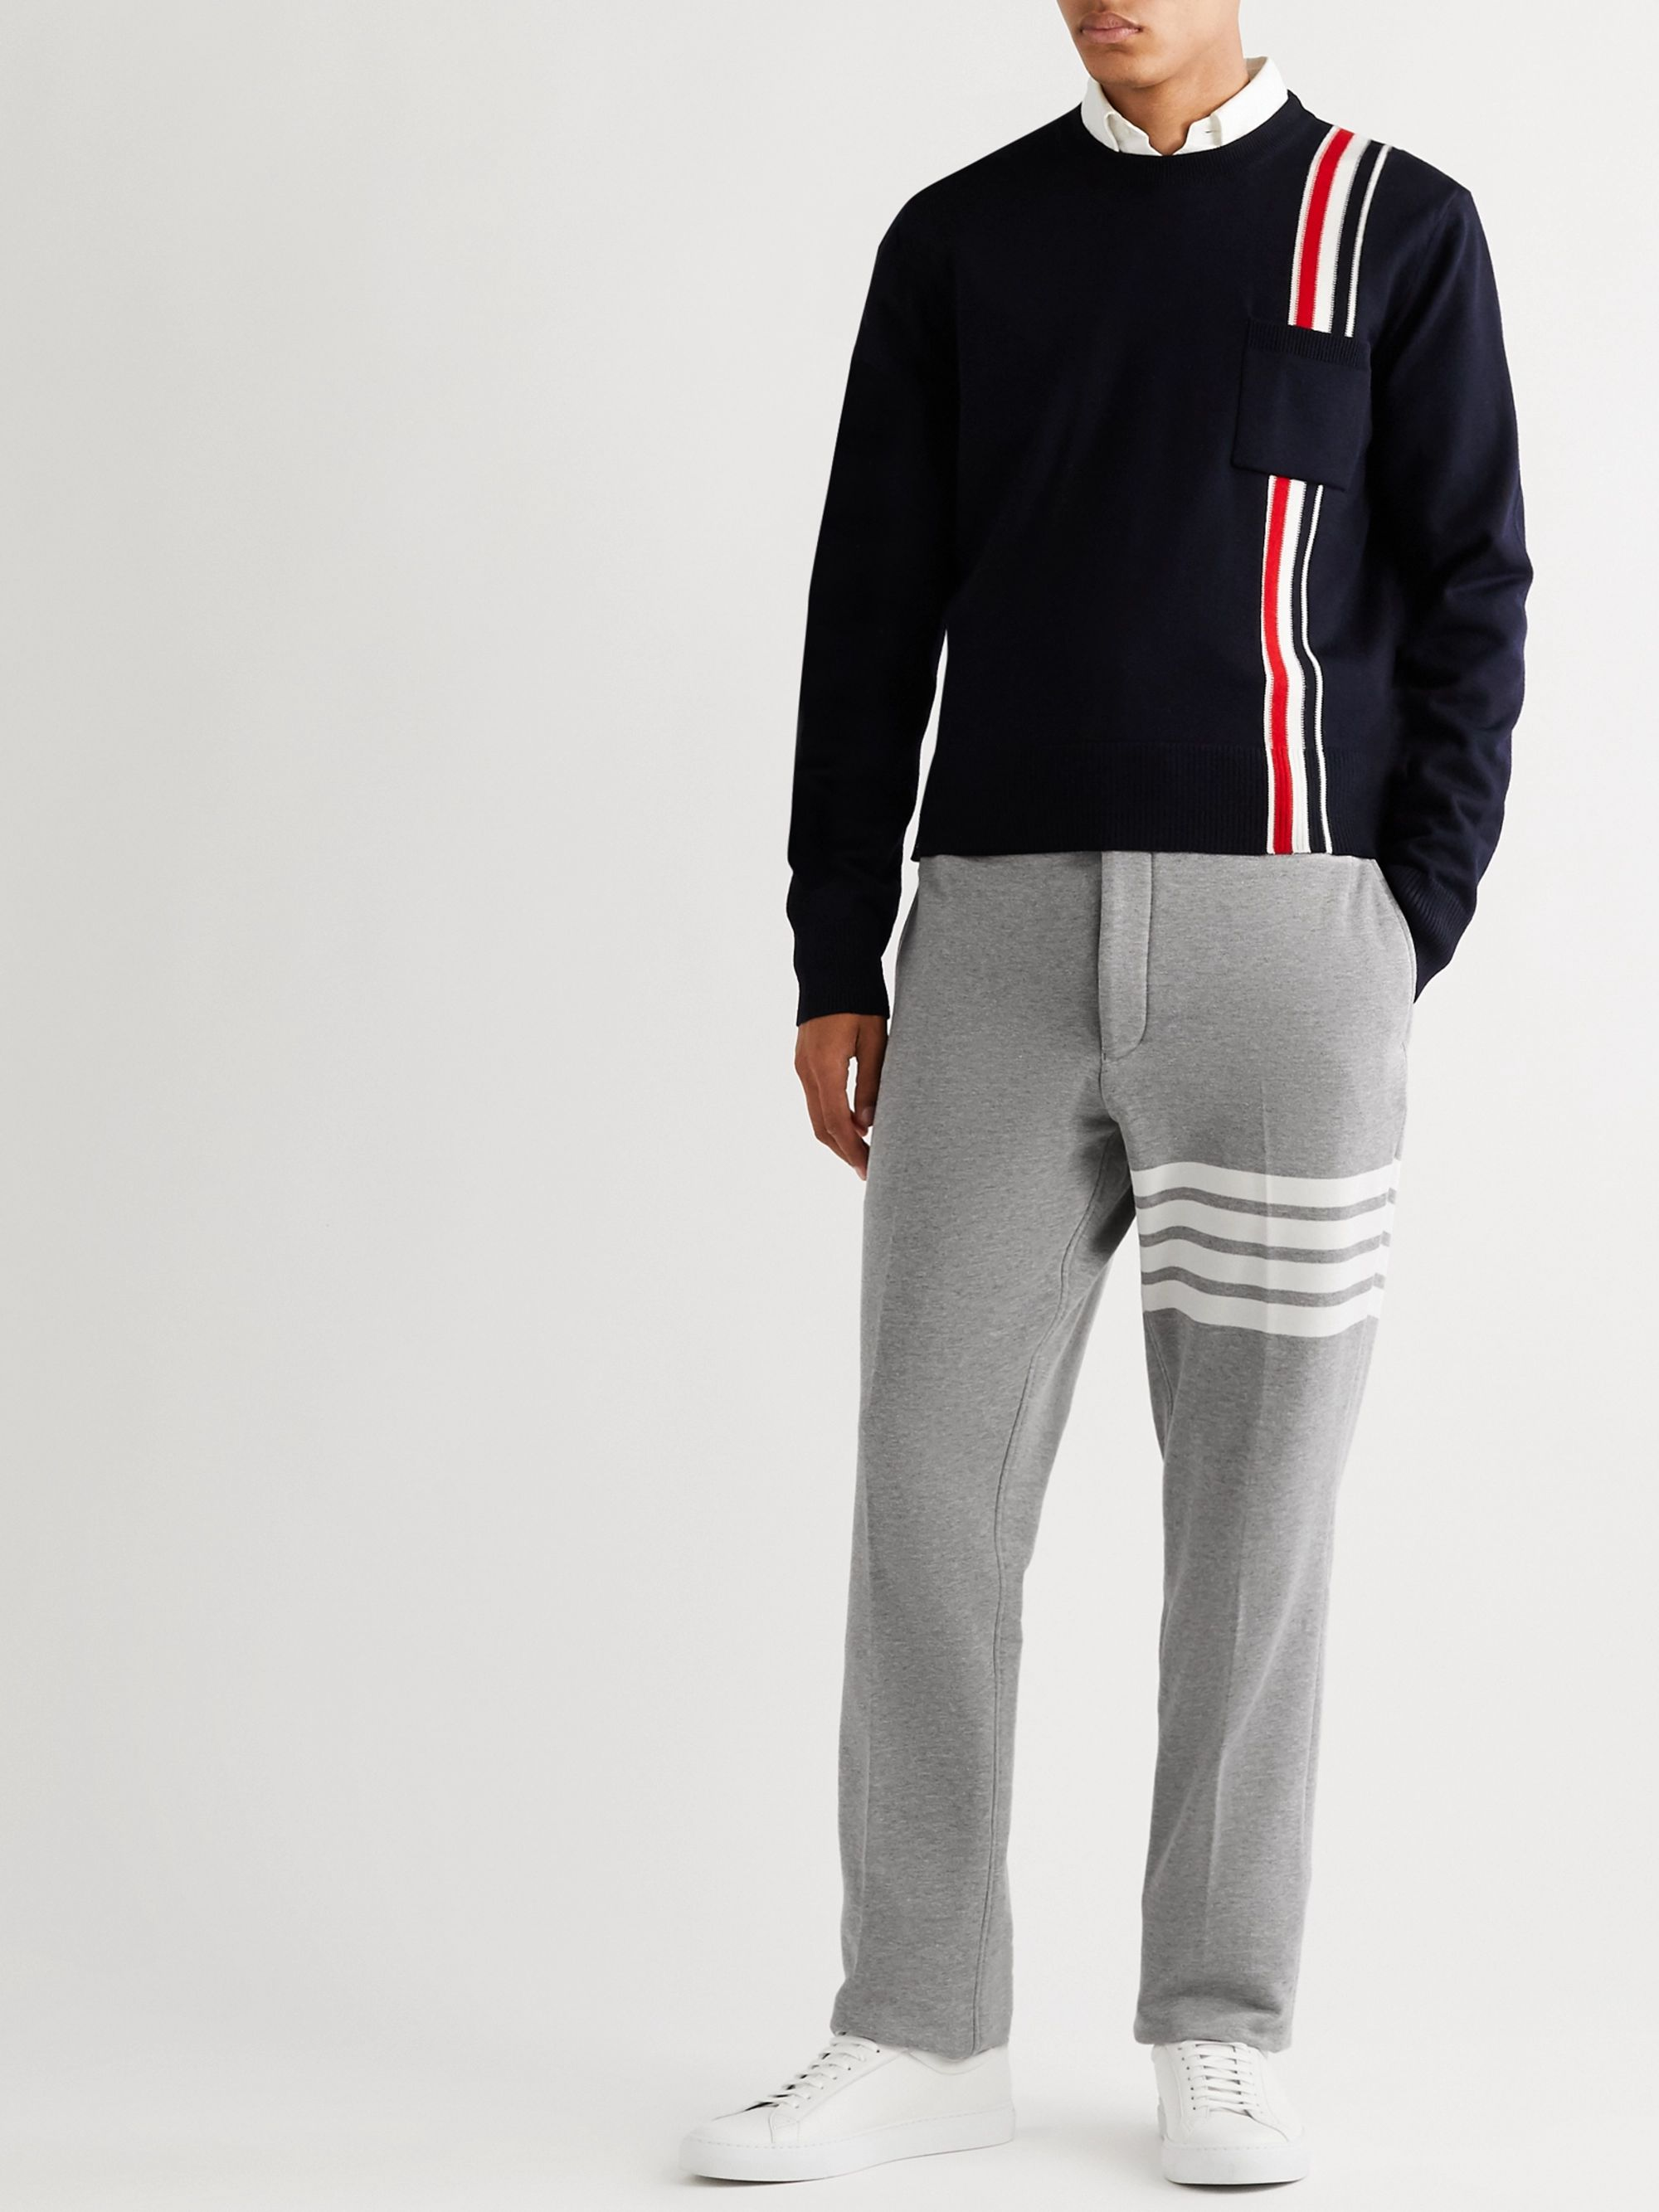 Navy Striped Merino Wool Sweater | Thom Browne | MR PORTER